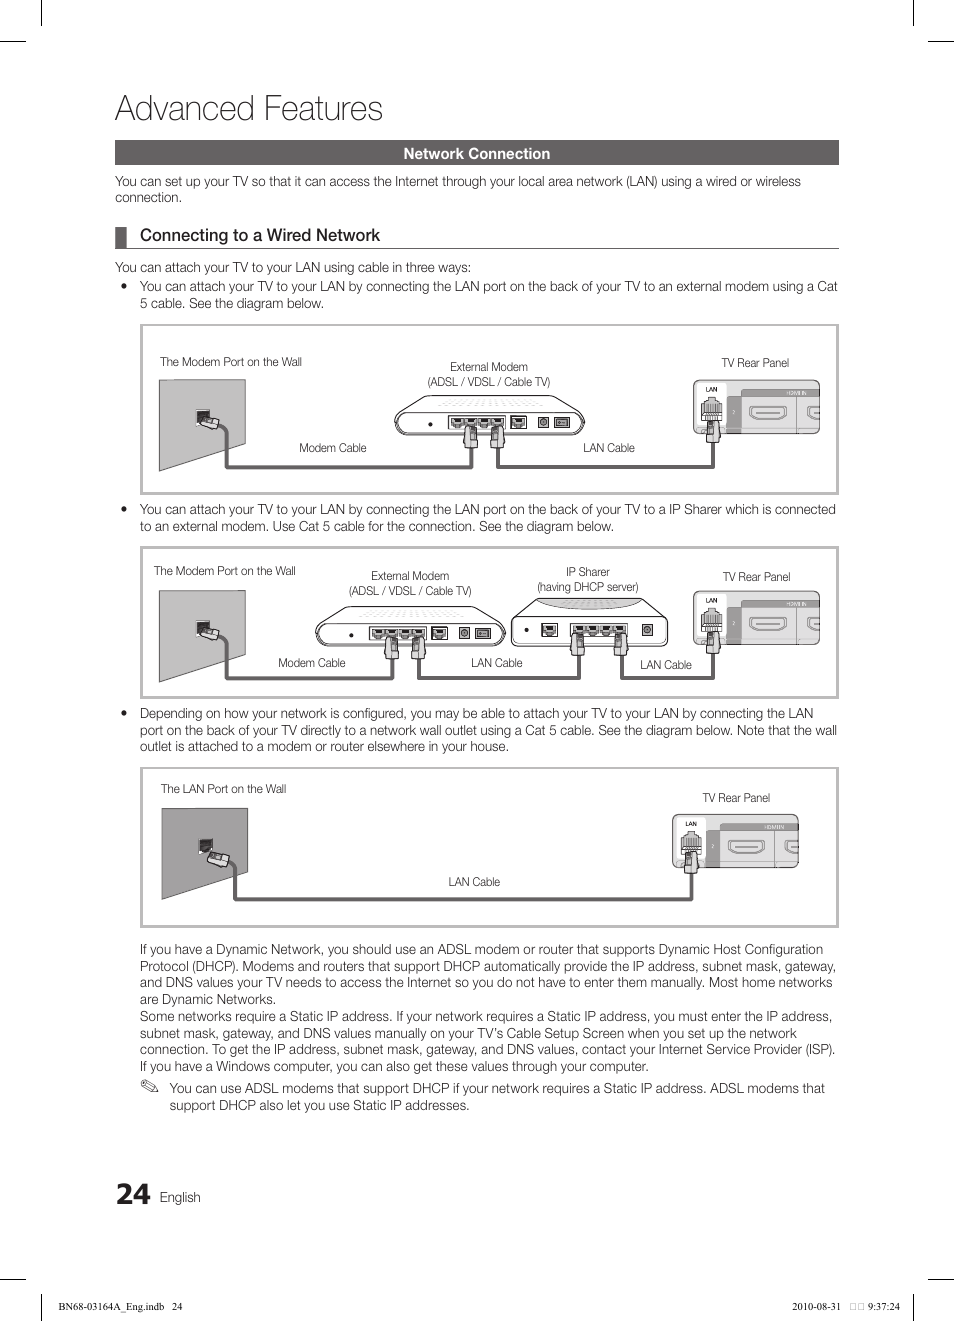 Advanced Features Samsung Ln55c630k1fxza User Manual Page 24 52 Vdsl Wiring Diagram